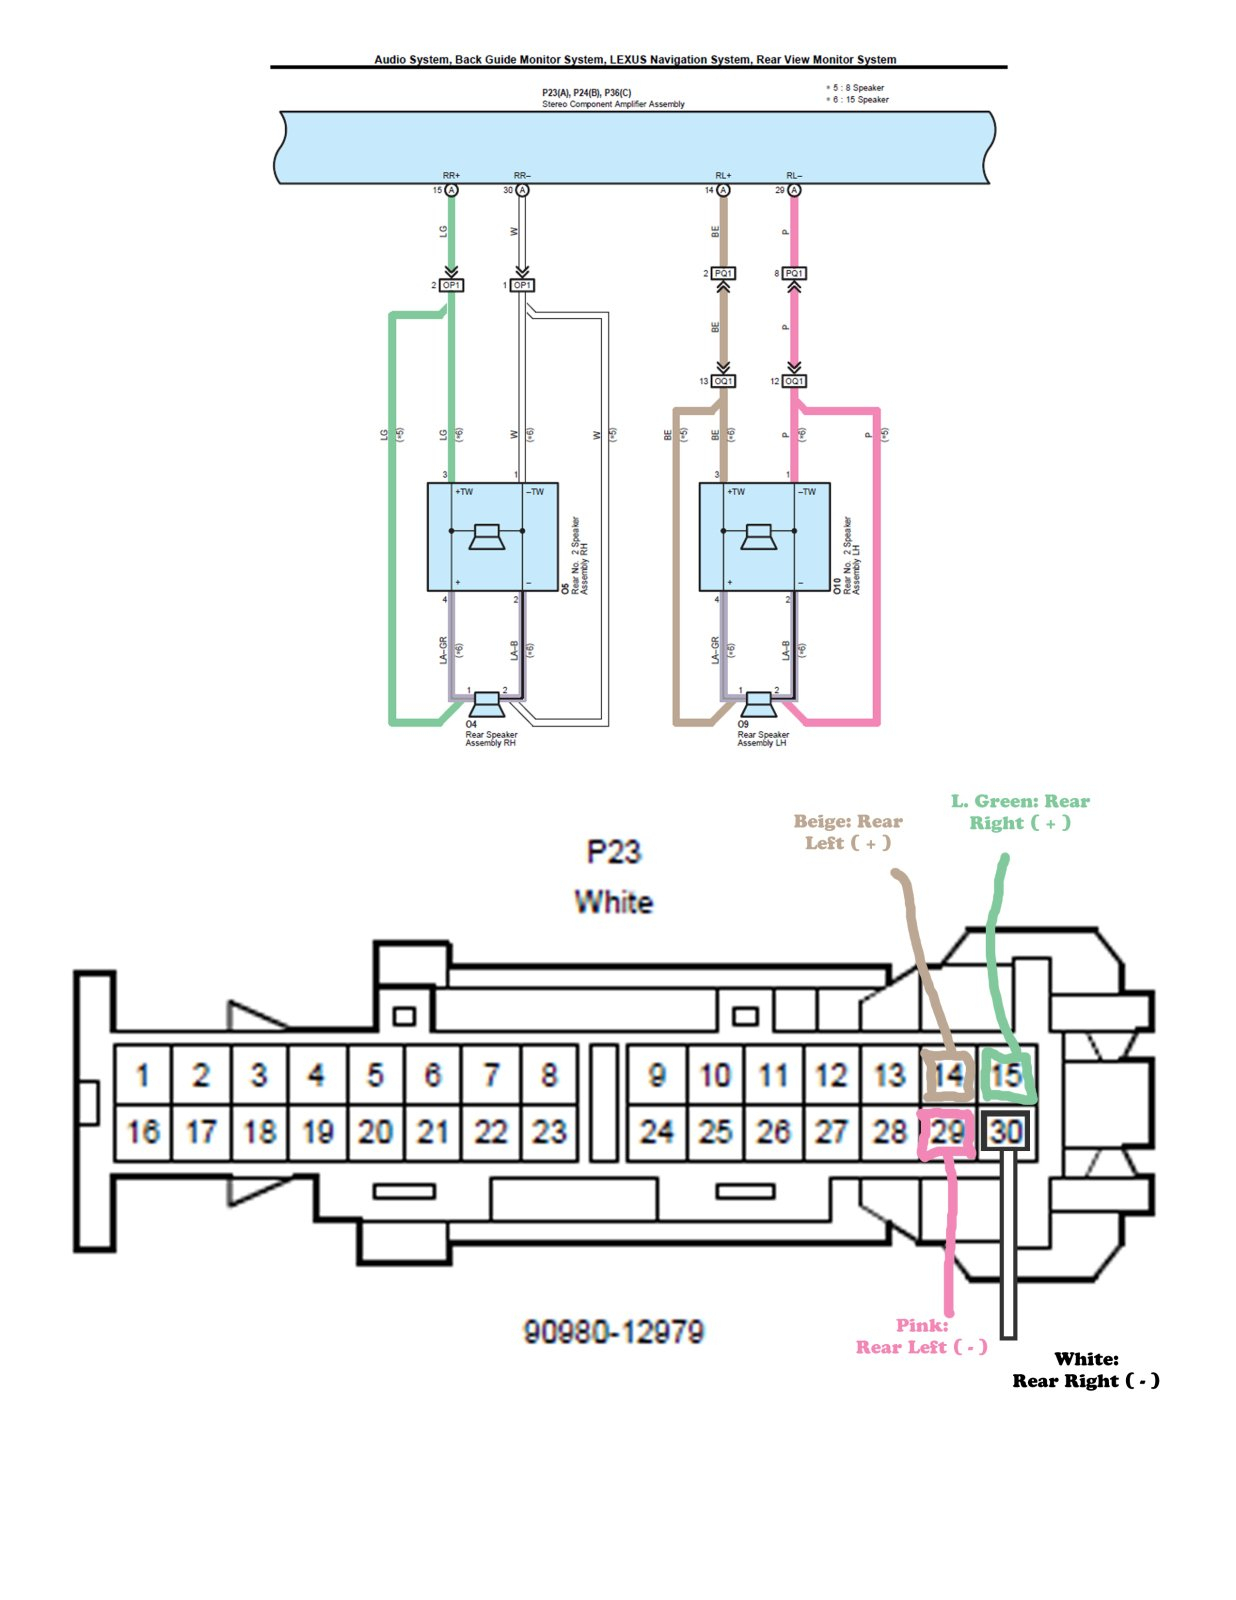 Jl Audio 500 1v2 Wiring Diagram